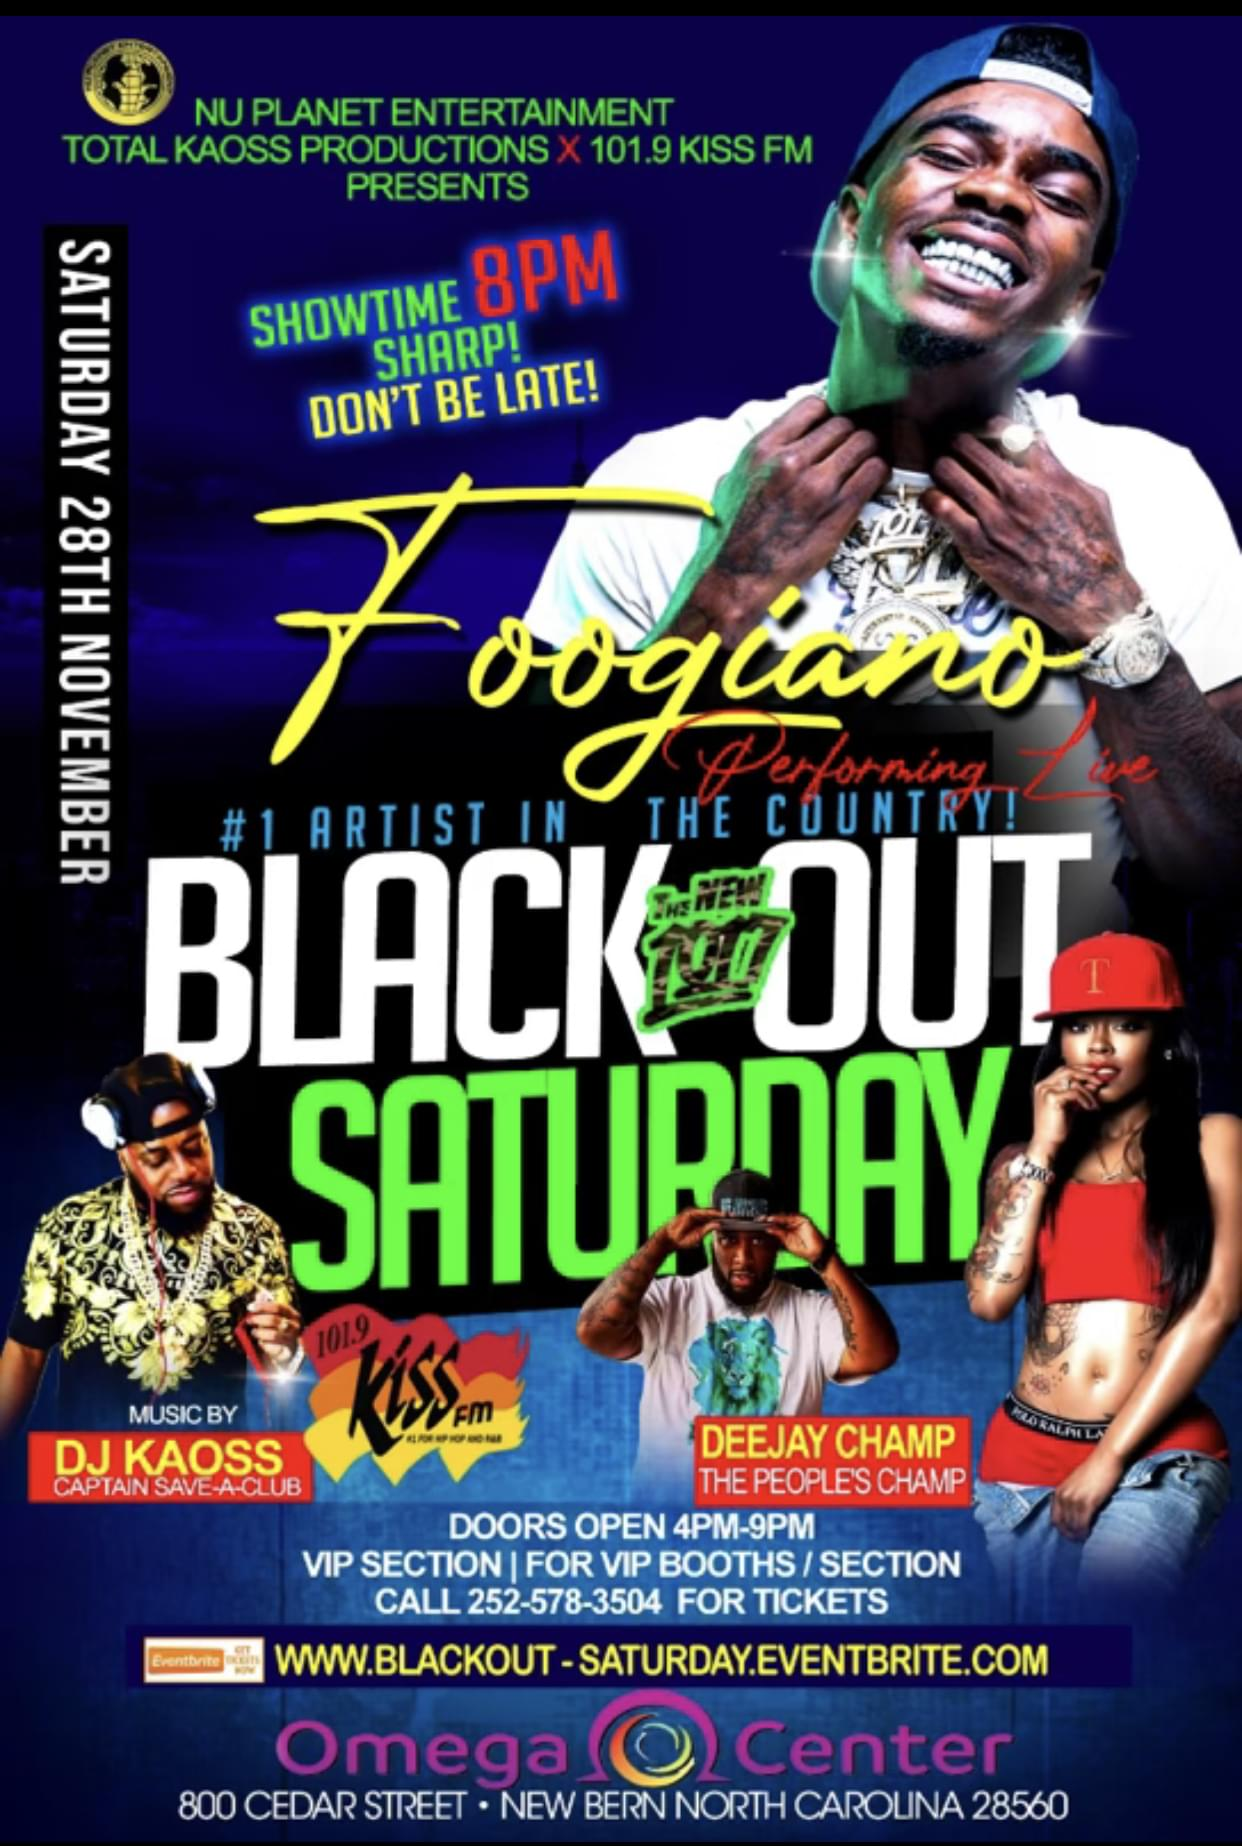 Black Out Saturday with Foogiano!!!